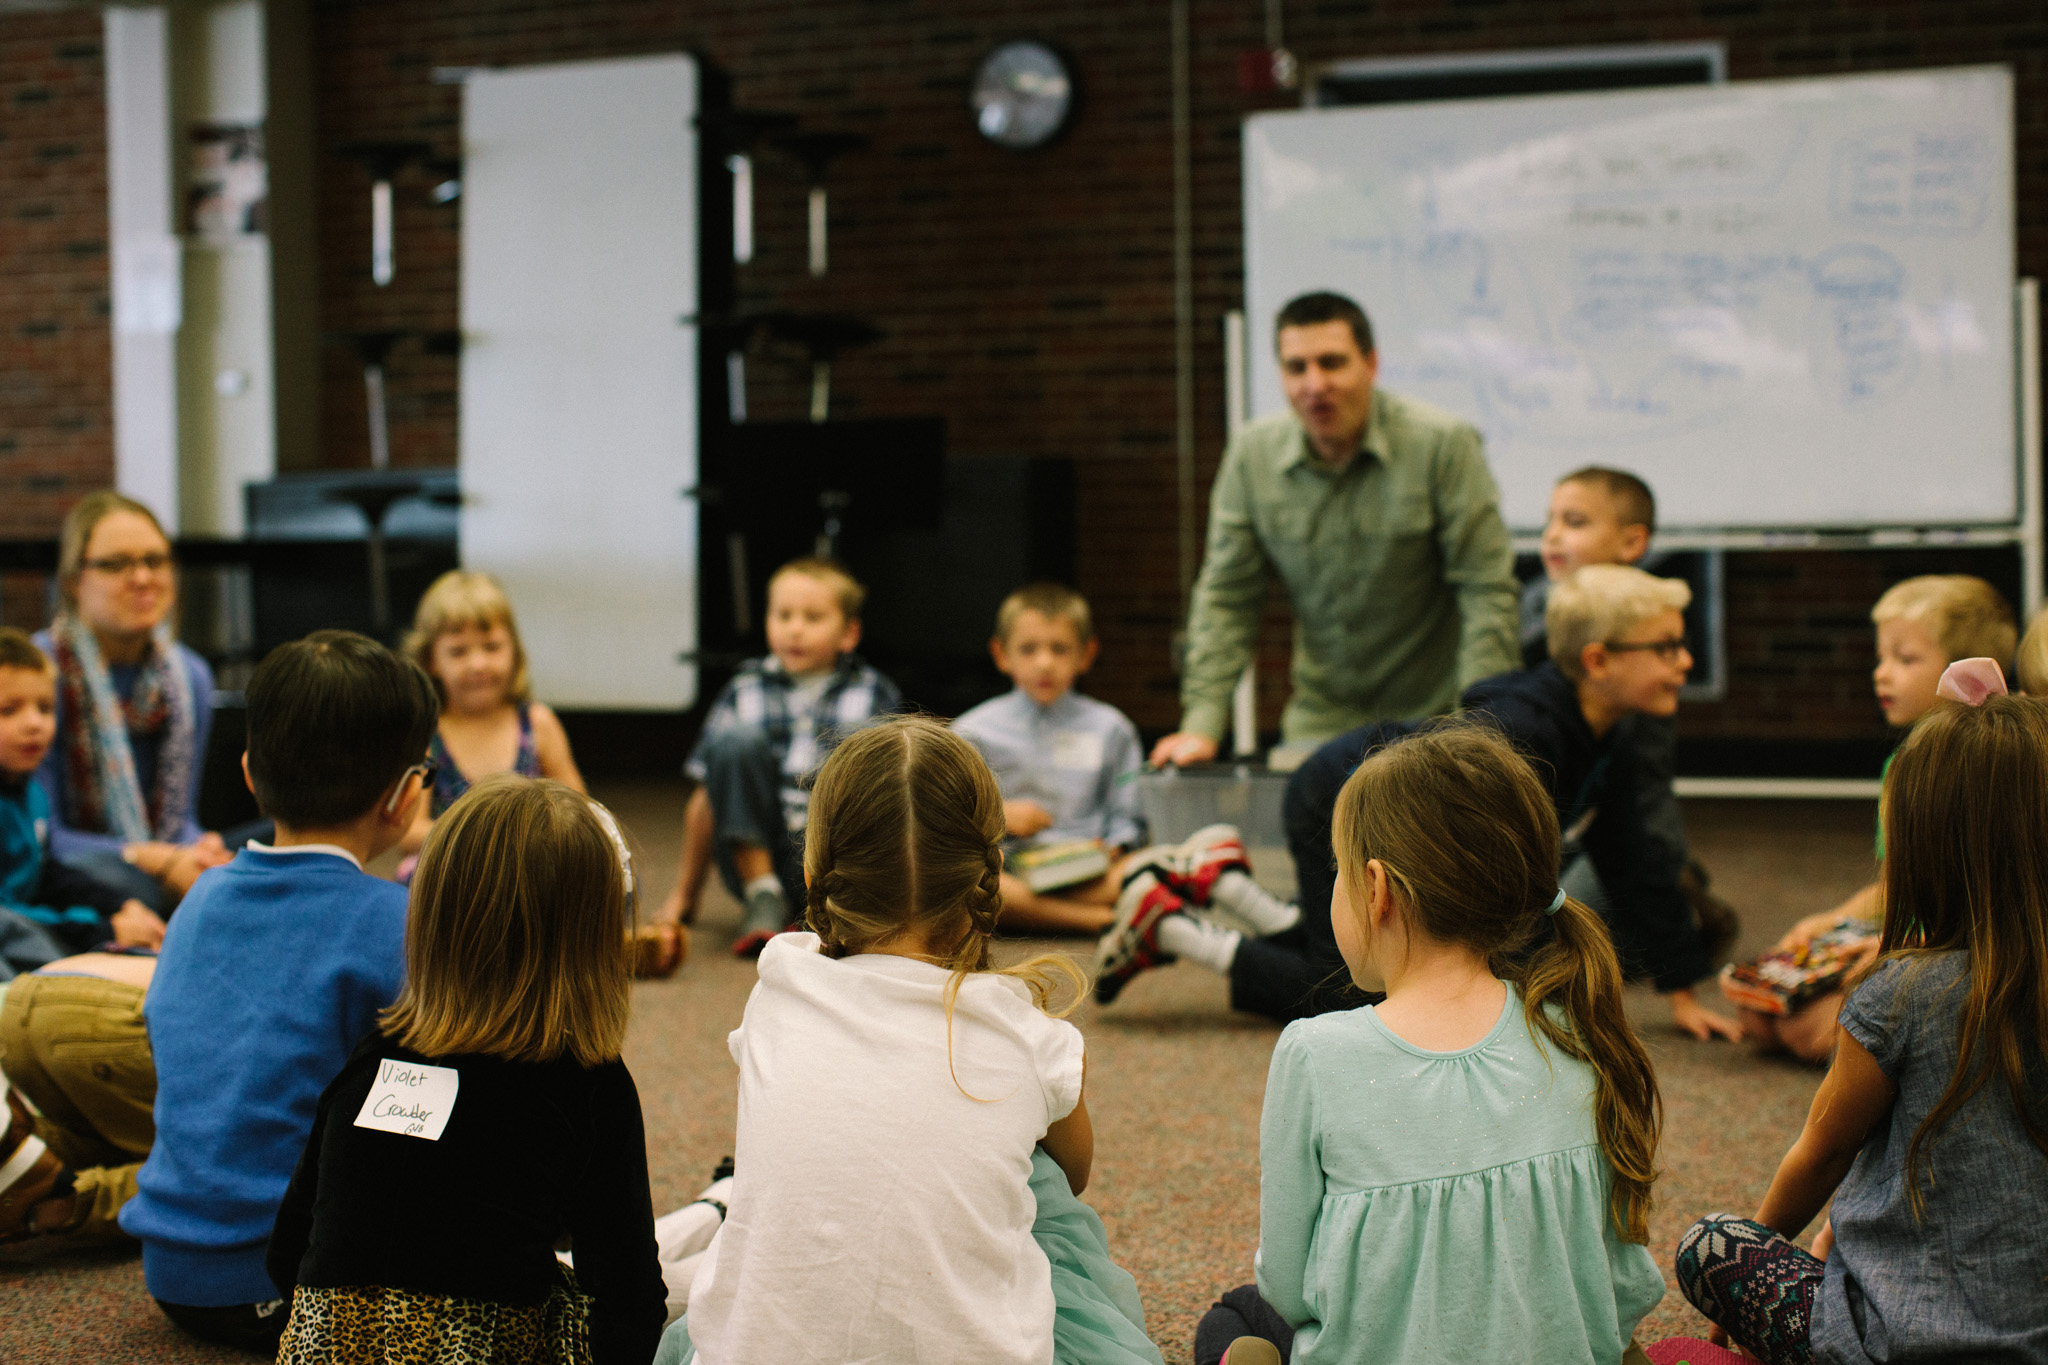 Children ages 0-9 are welcome in our Coram Deo Kids program on Sunday mornings. Children experience a fun learning environment that includes singing, crafts, and an engaging Bible story taught by a trained storyteller.